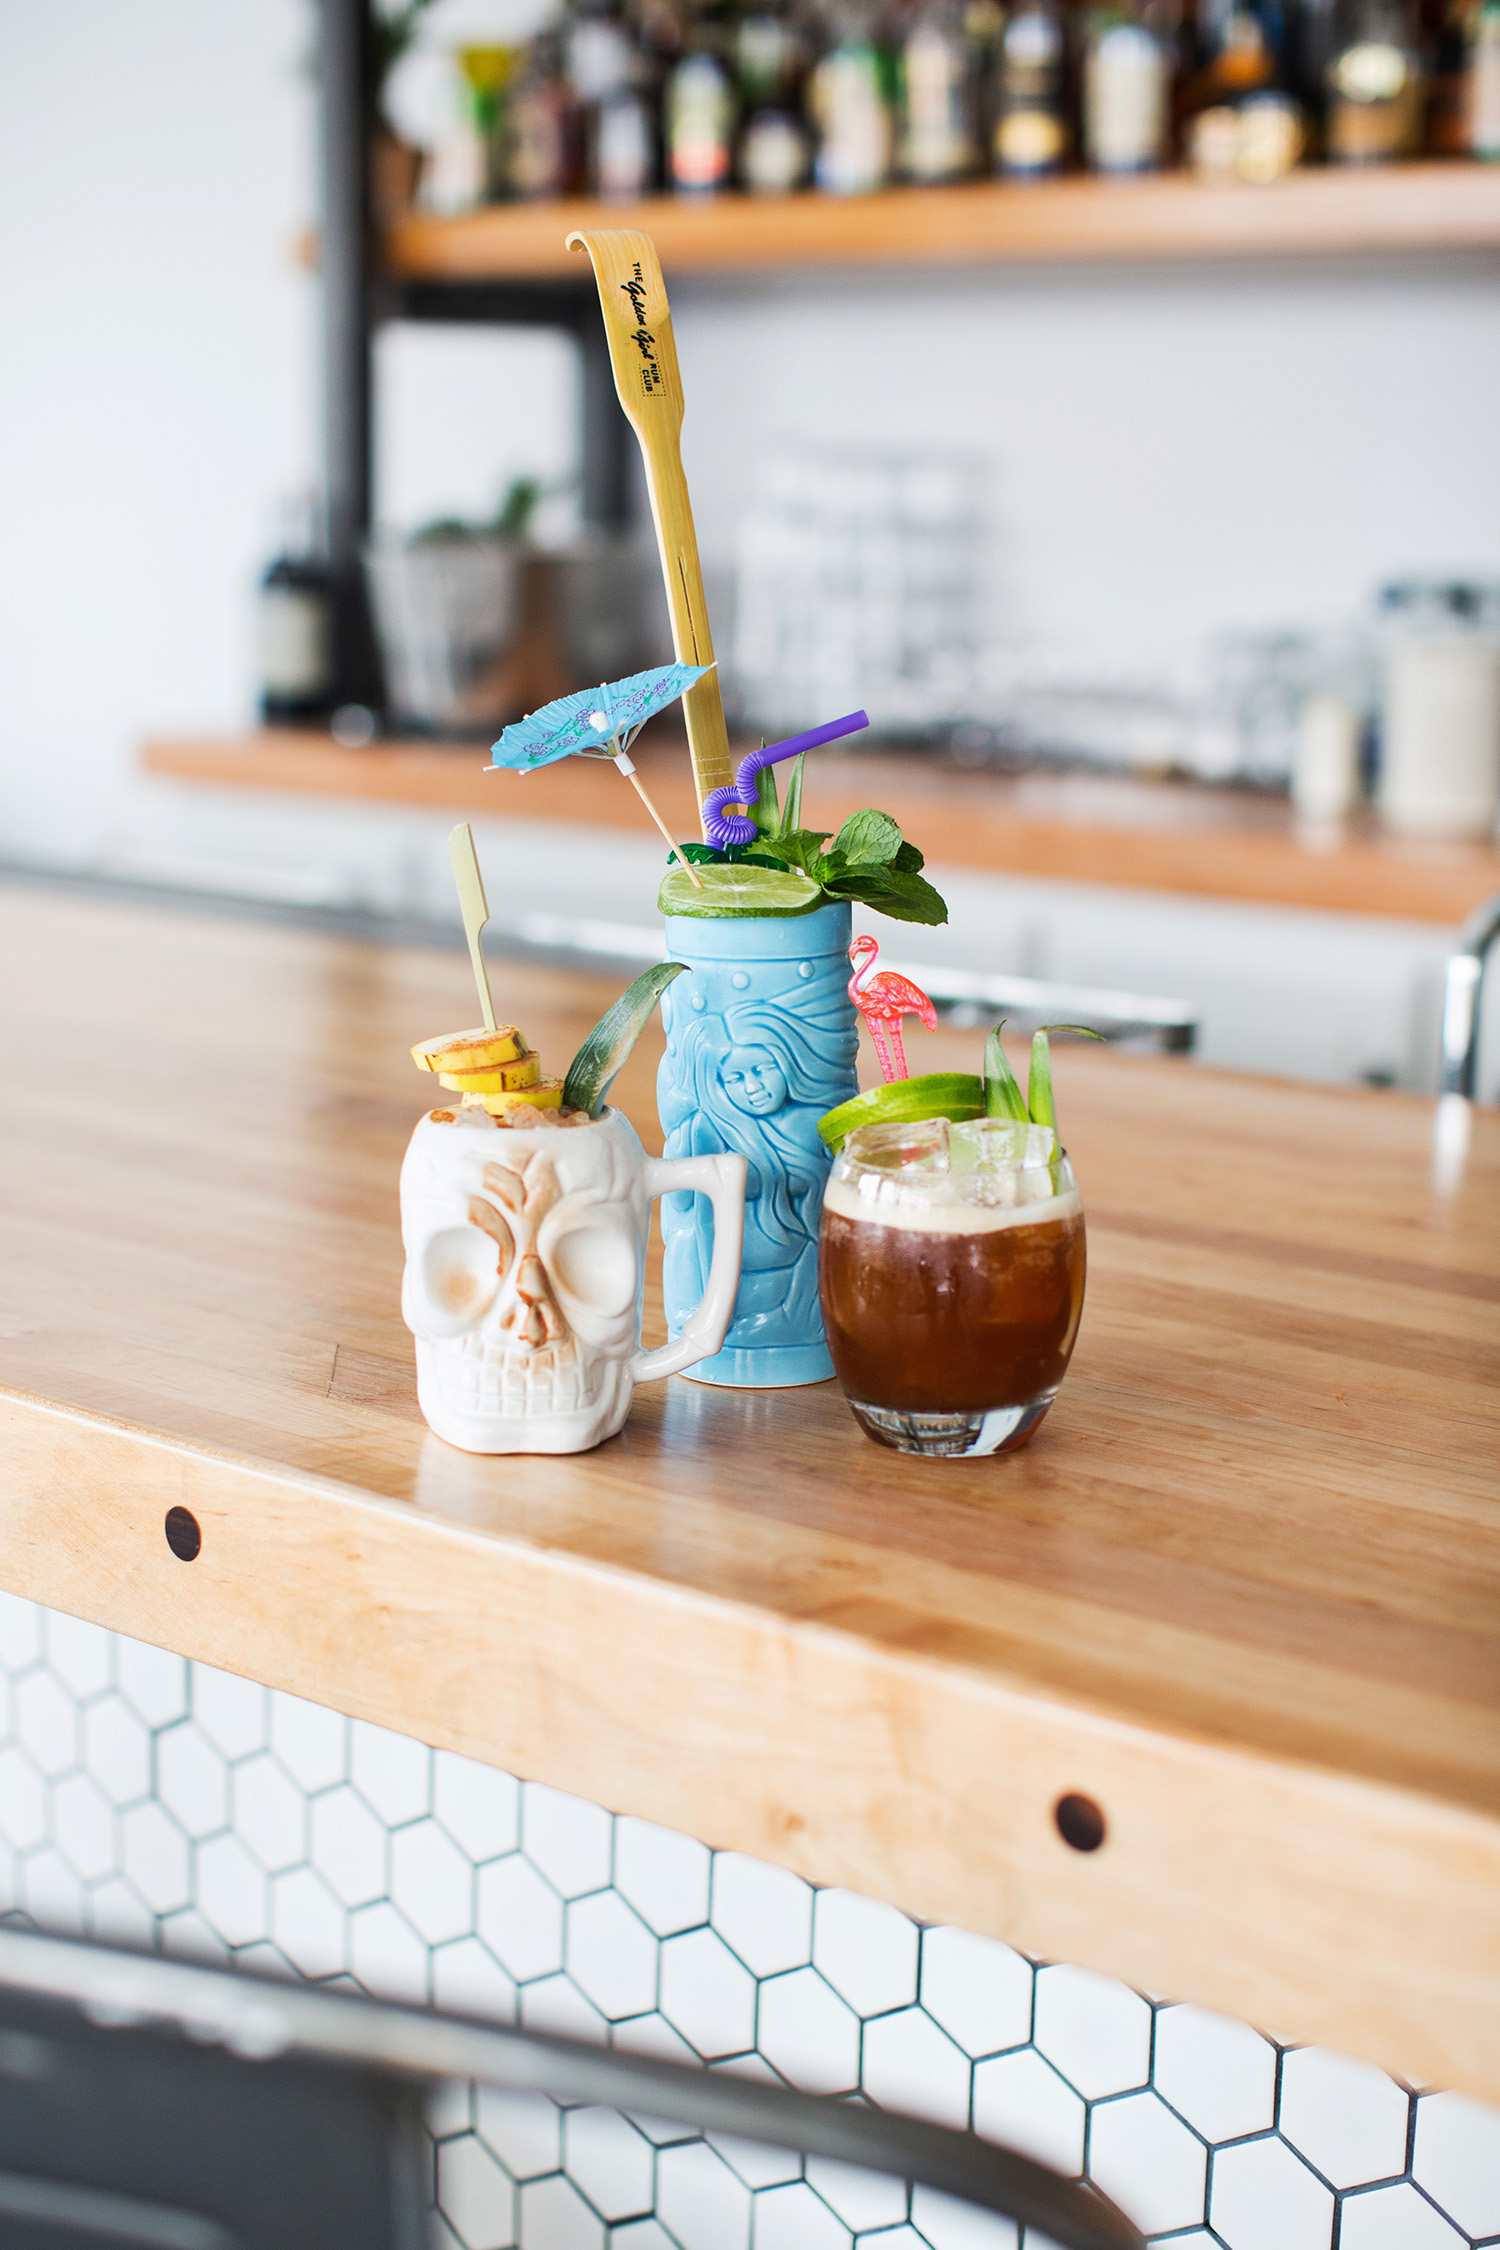 The Golden Girl Rum Club the itch cocktail with backscratcher